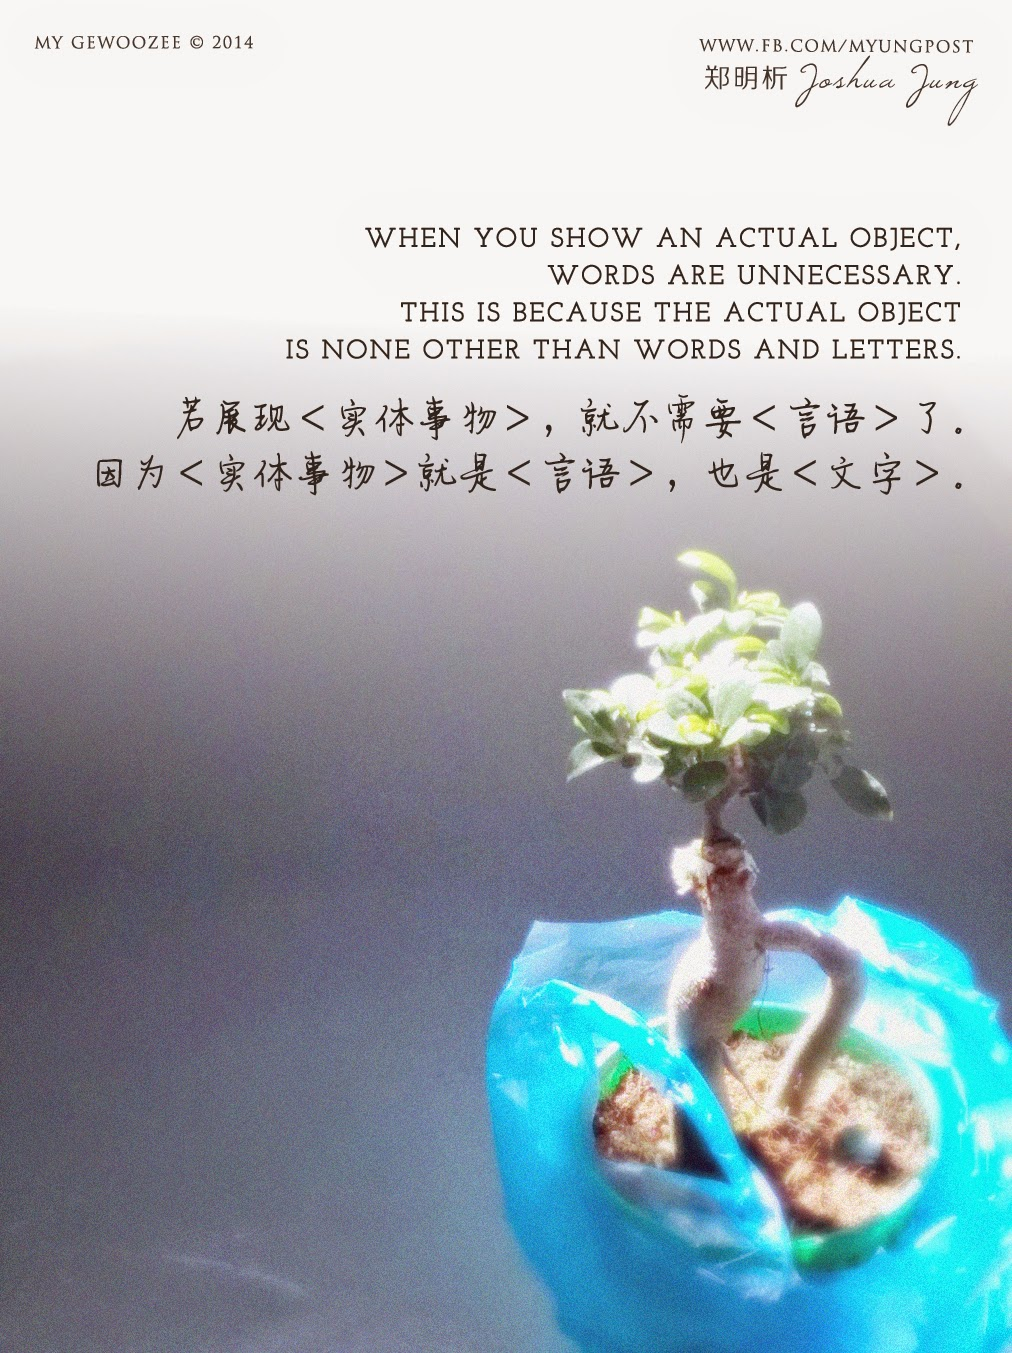 郑明析,摄理,月明洞,盆栽,光,言语,文字,事物,Joshua Jung, Providence, Wolmyeong Dong, Light, words, letters, object, bonsai